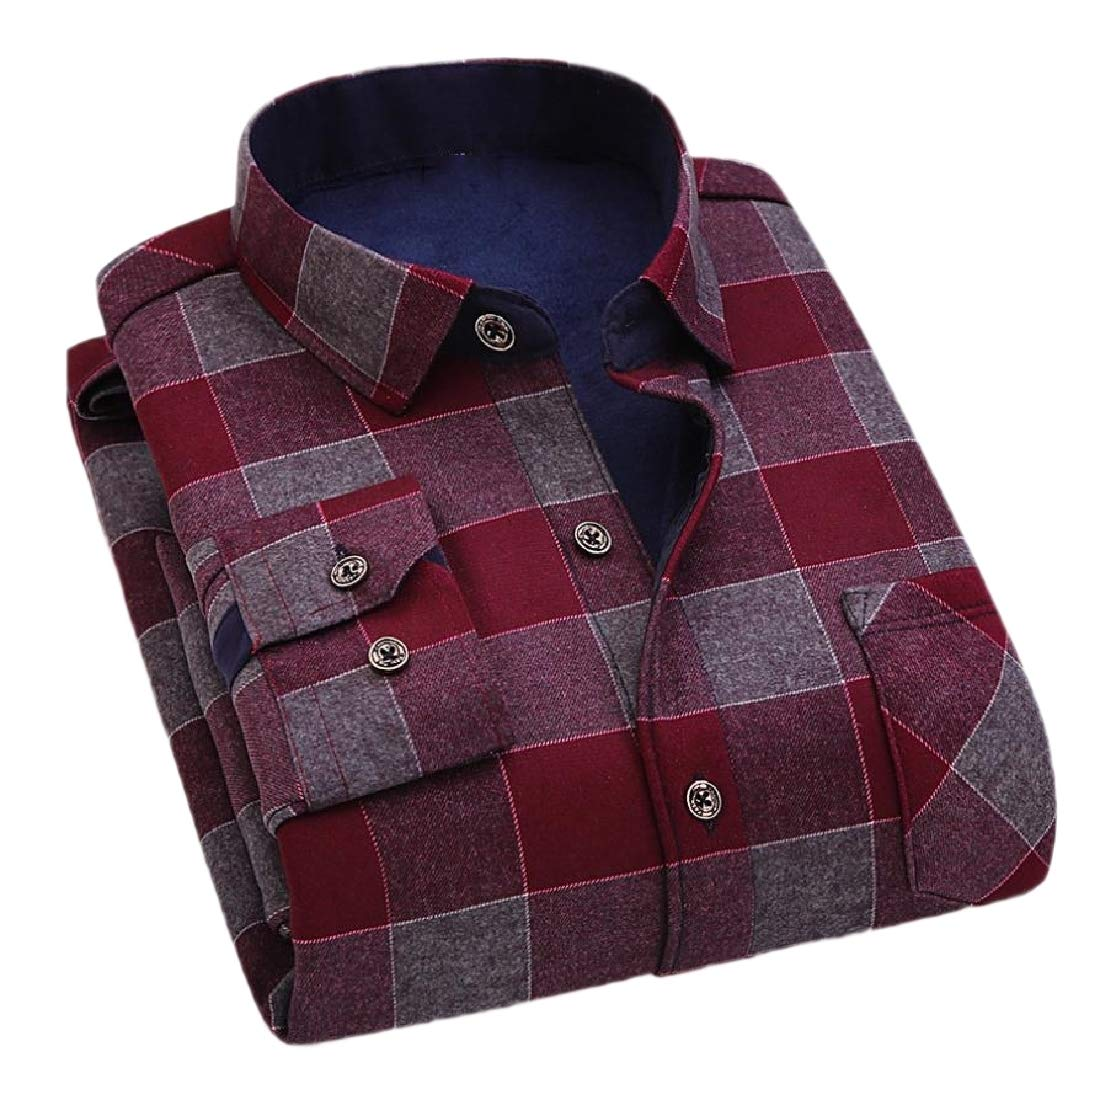 Tootless-Men Plus Velvet Tops Thicken Lattice Detail Relaxed-Fit Shirts